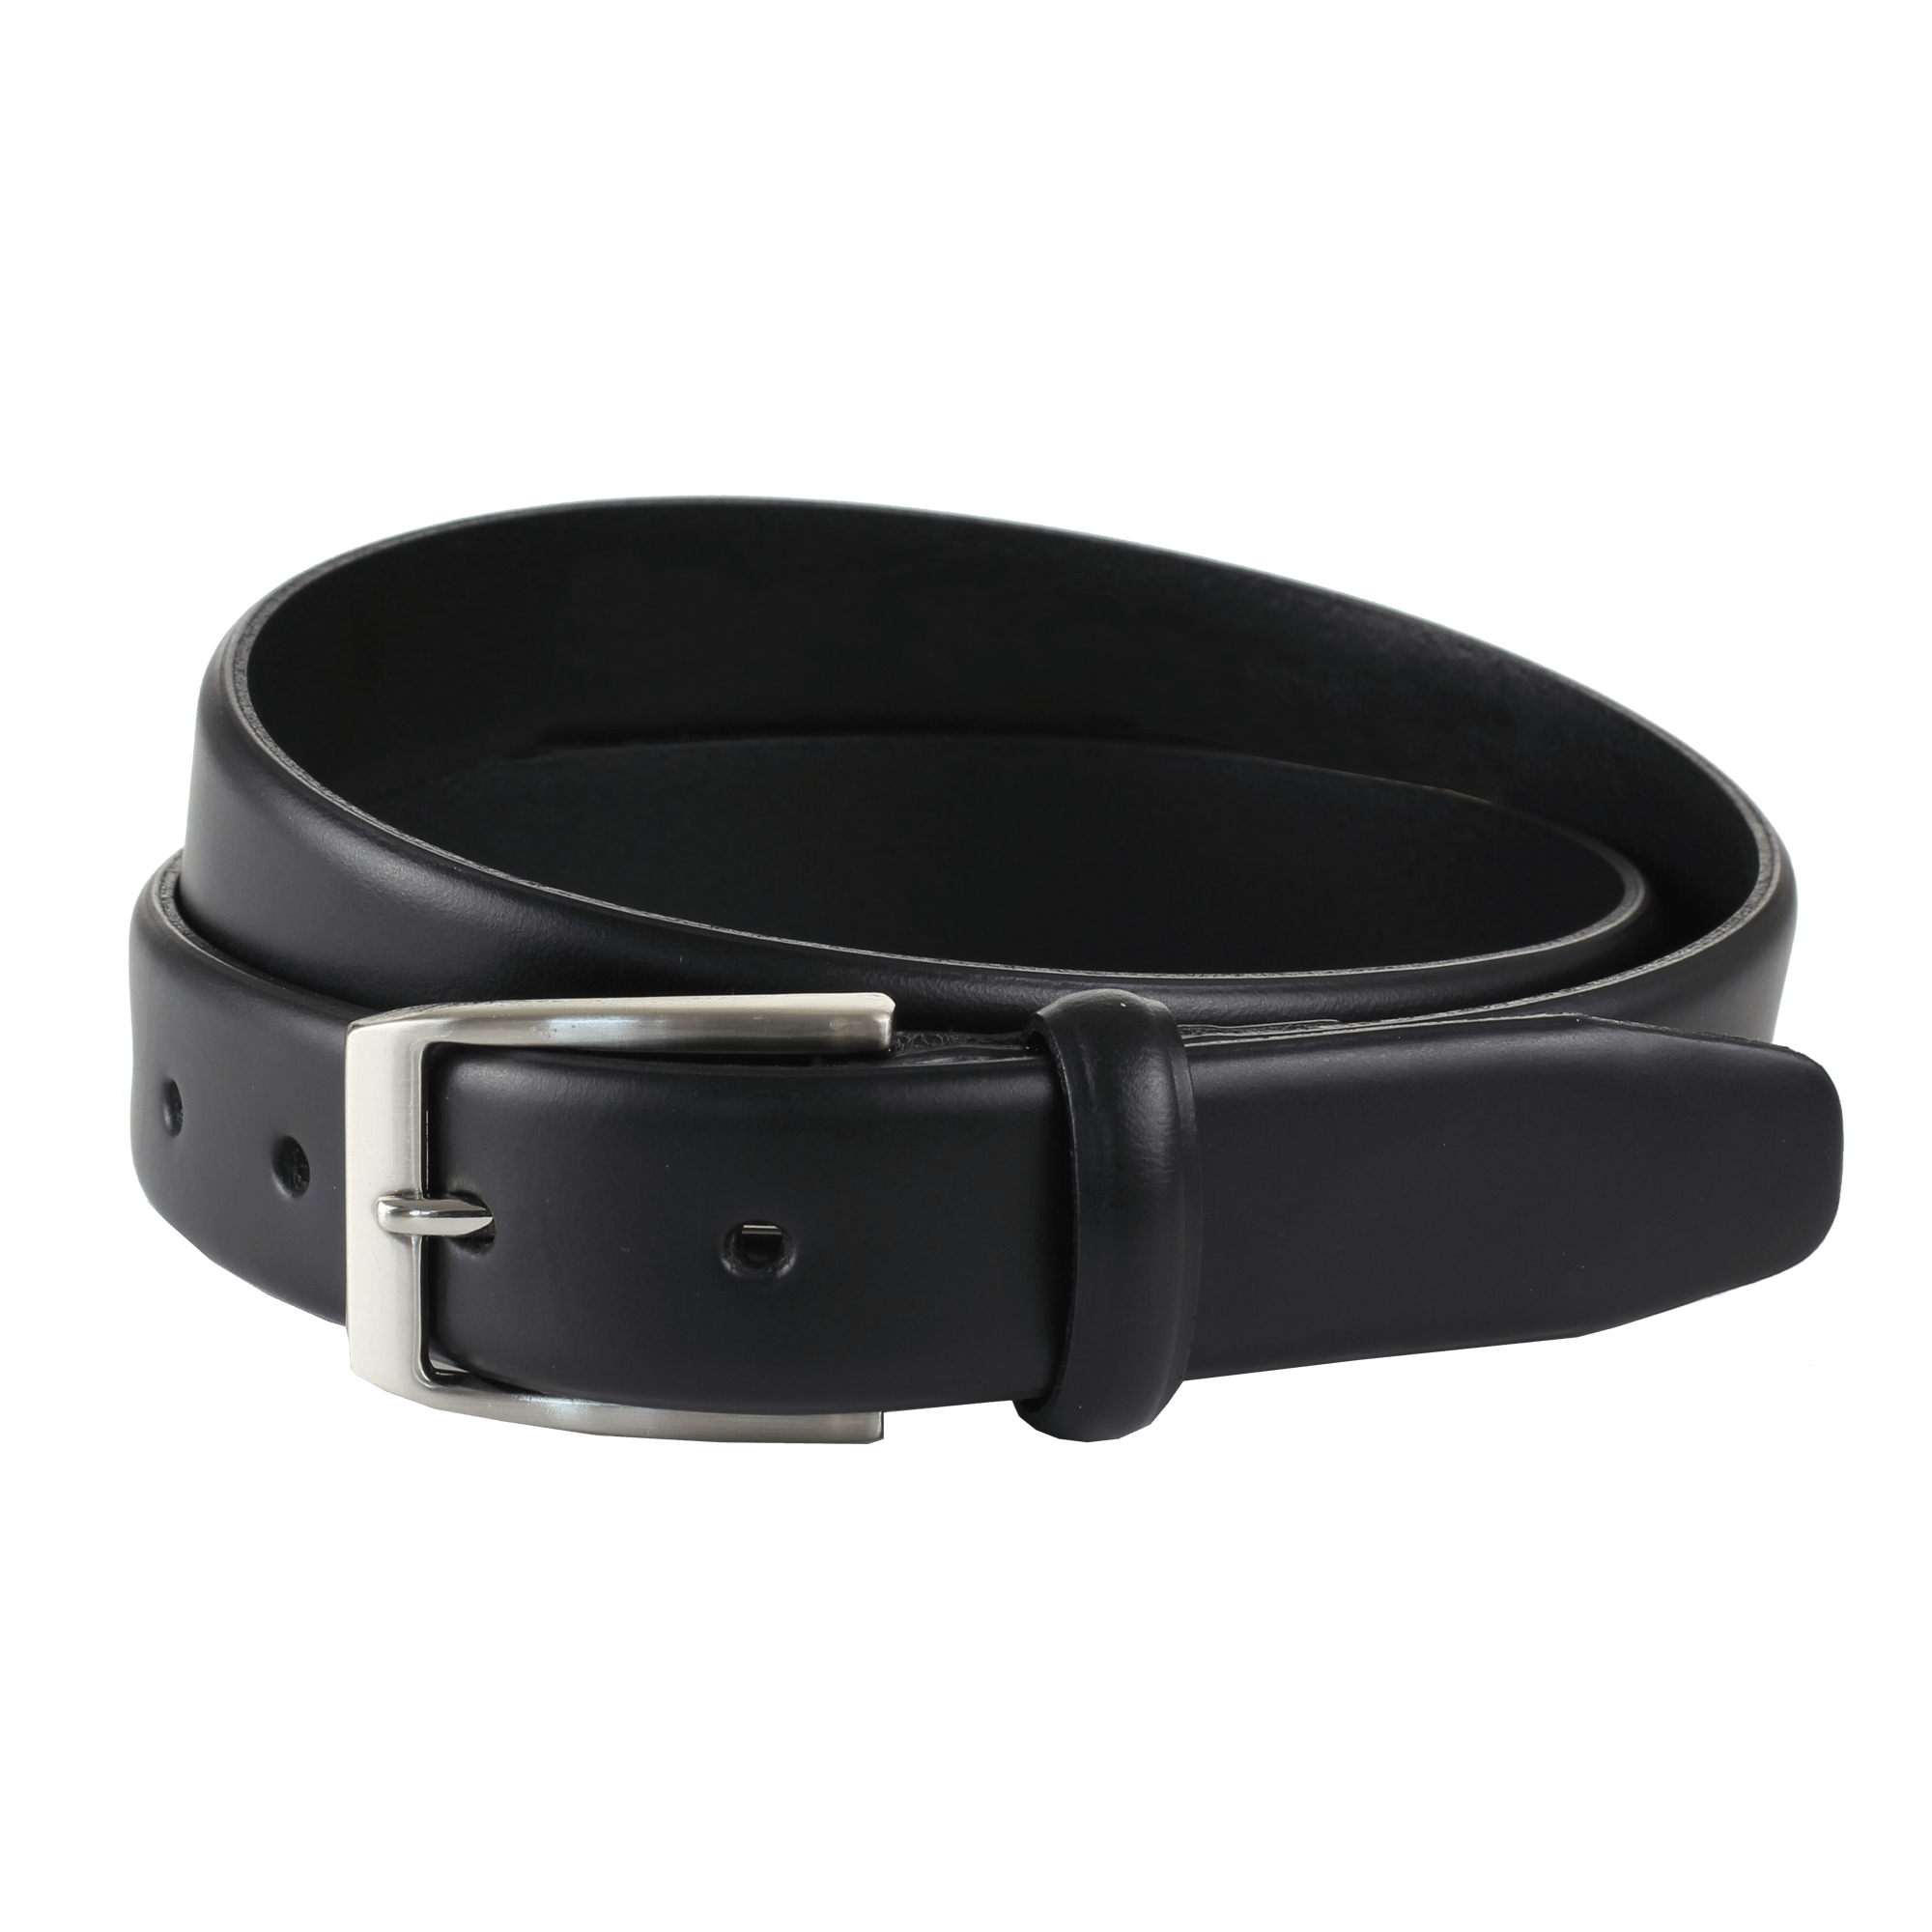 Transparent belt. Black leather png stickpng